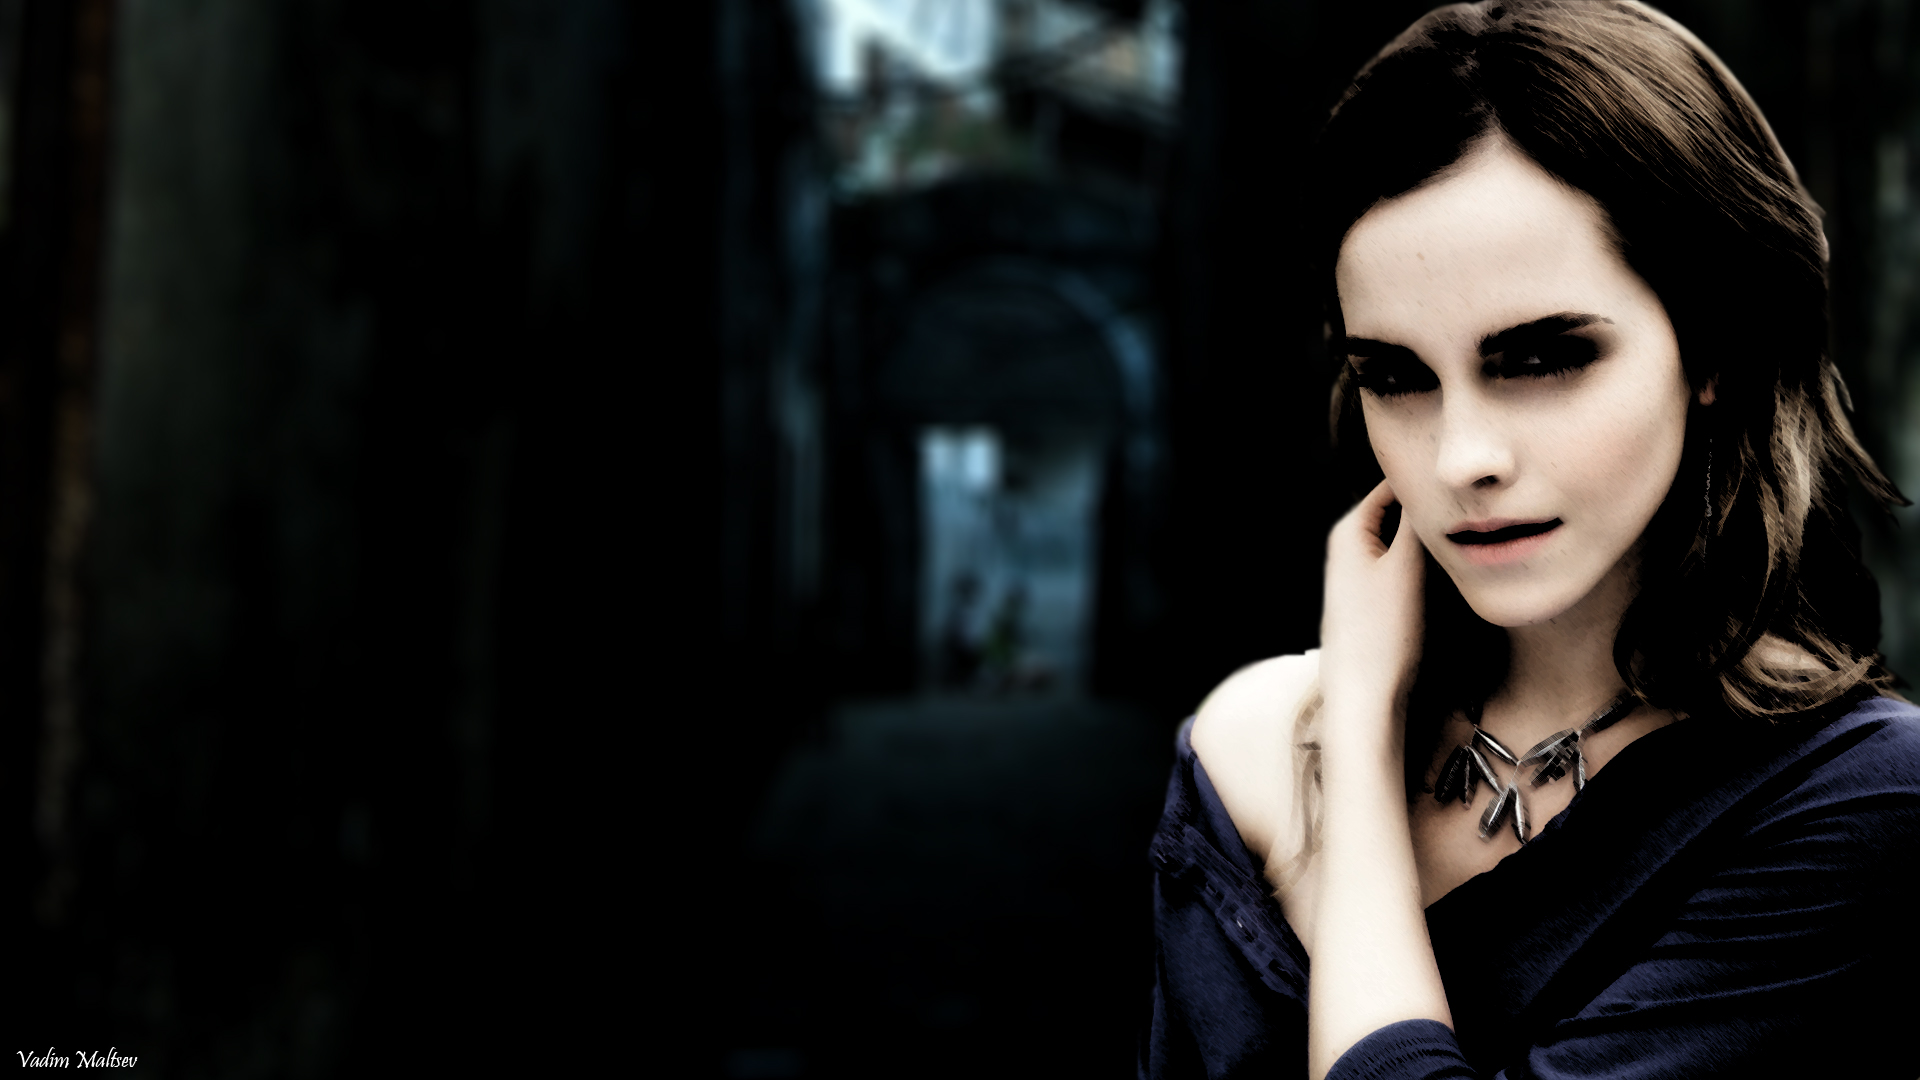 Go Back Images For Emma Watson Hd Wallpaper 1920x1080 1920x1080